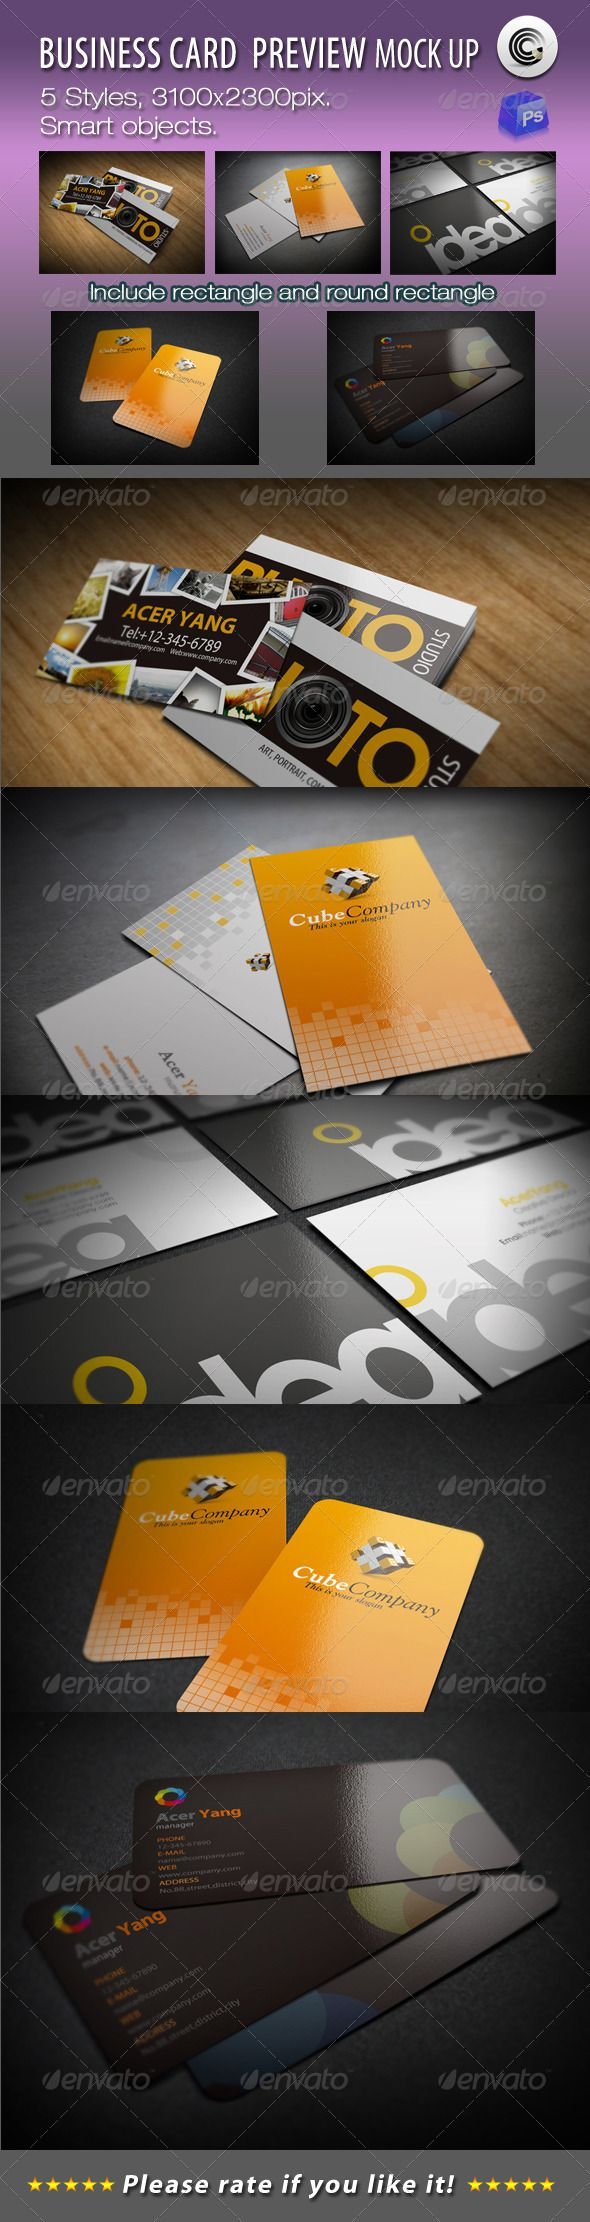 5 styles business card preview mock ups business cards mockup and 5 styles business card preview mock ups colourmoves